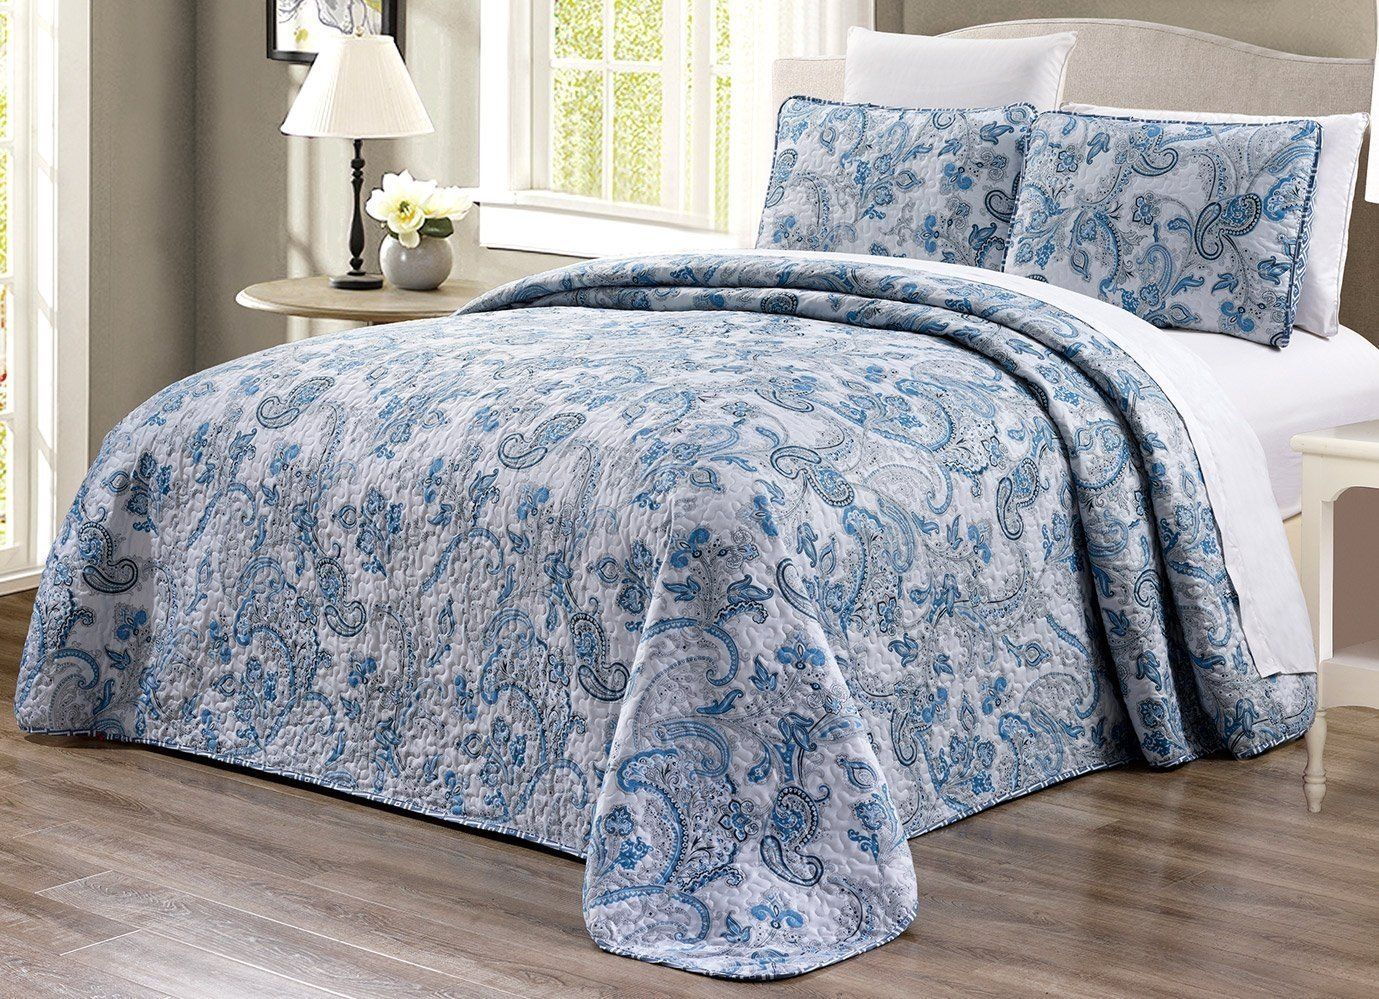 Oversize King Grey Black White Blue Paisley 3 Piece Oversize 290cm X 240cm Fine Printed Prewashed Bed Spreads Twin Bedspreads King Size Bed Covers